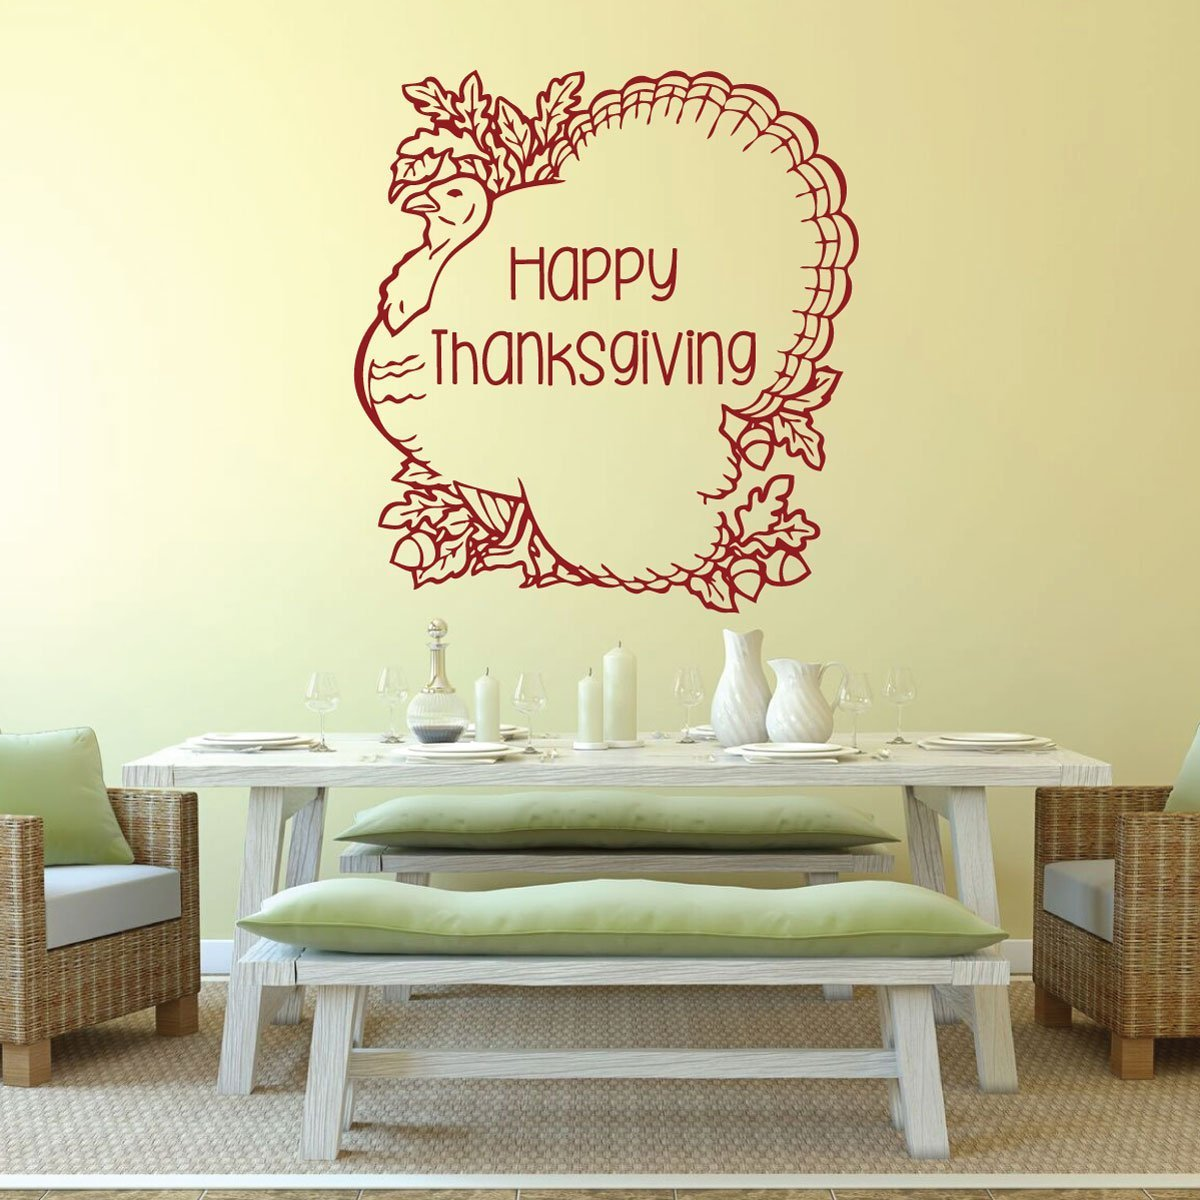 Thanksgiving Turkey - Happy Thanksgiving Vinyl Wall Art Decal ...